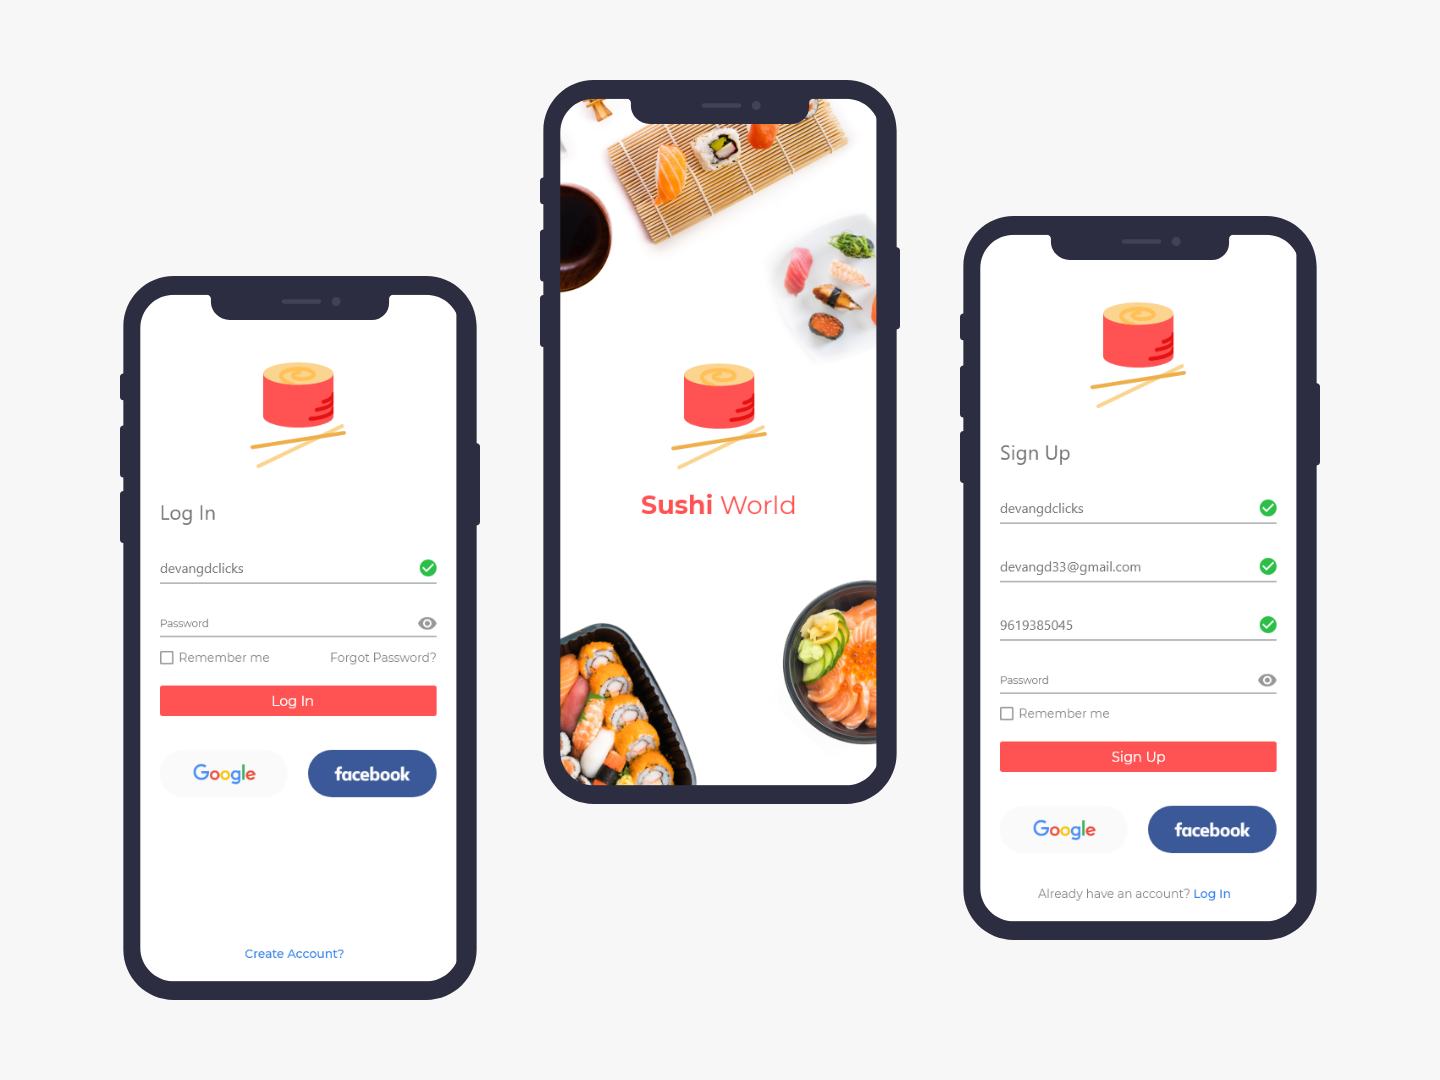 Sushi App Welcome, Log In & Sign Up Screen uplabs user interface design userinterface app ui signupform sign in login page welcome screen landing screen food app ui login design login form restaurant app food app signup page signup login screen login sushi dish sushi app